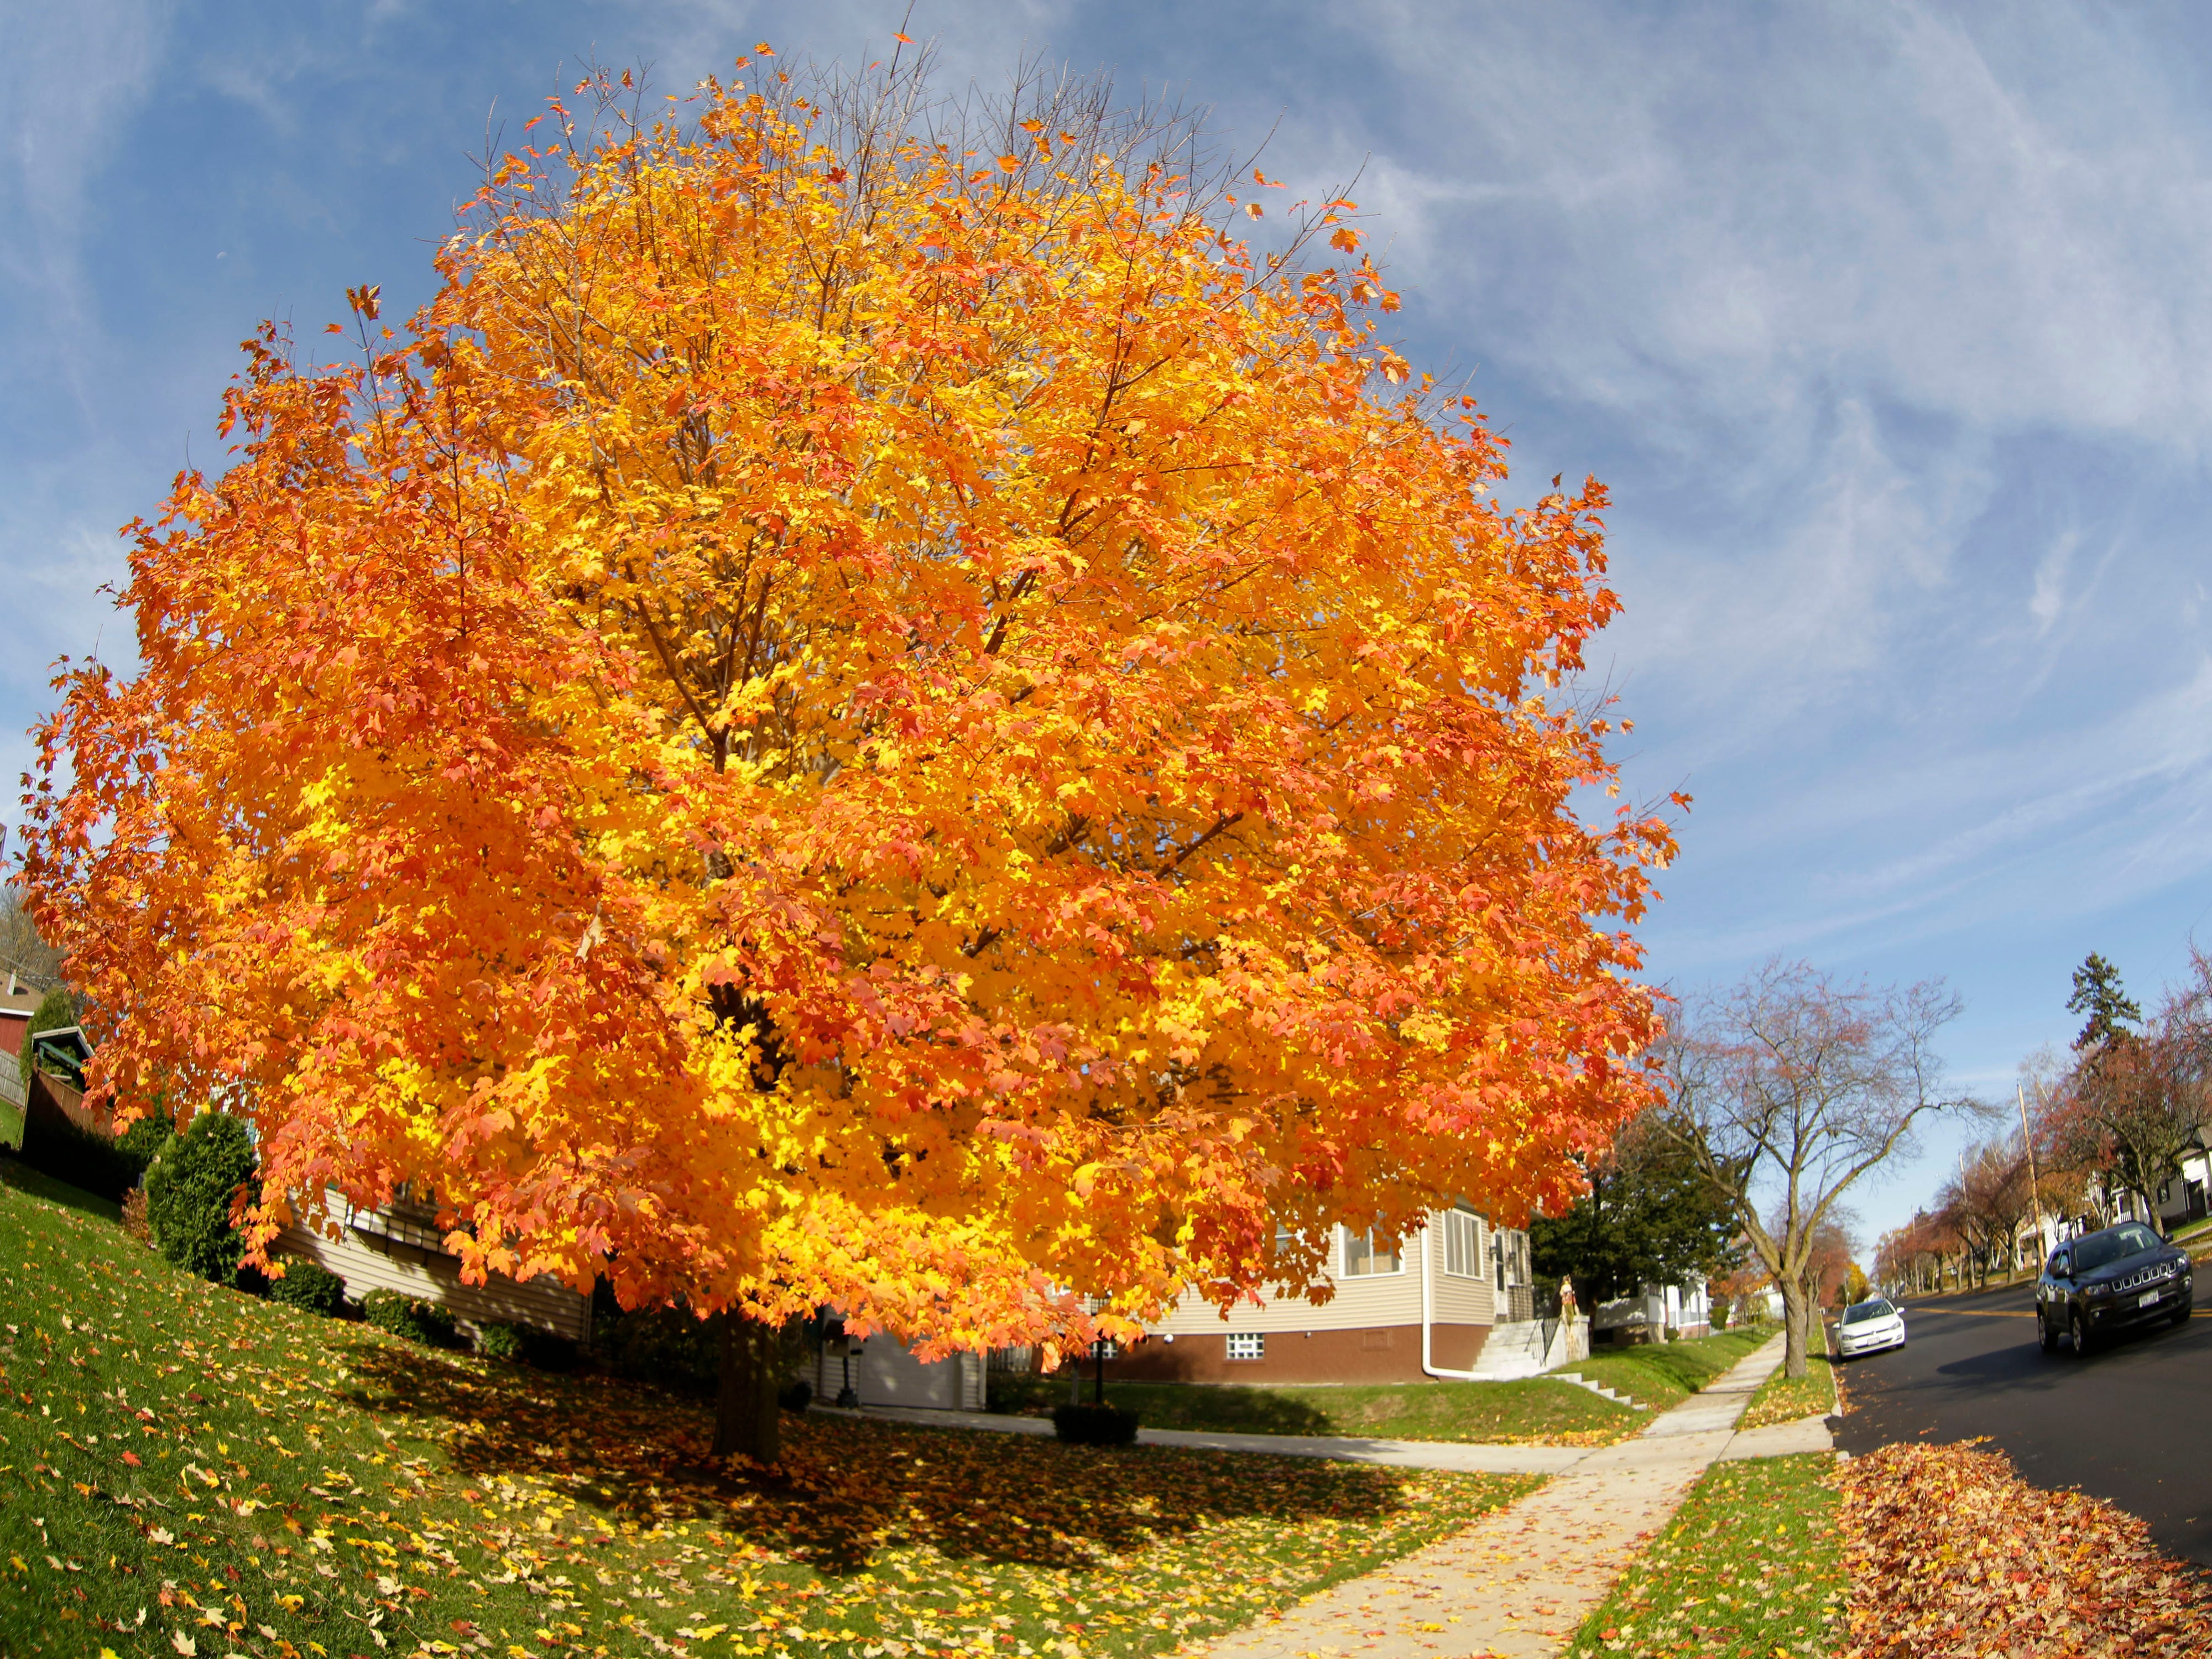 Vibrant fall color fills a maple tree along Evans Avenue, Wednesday, October 31, 2018, in Sheboygan, Wis.